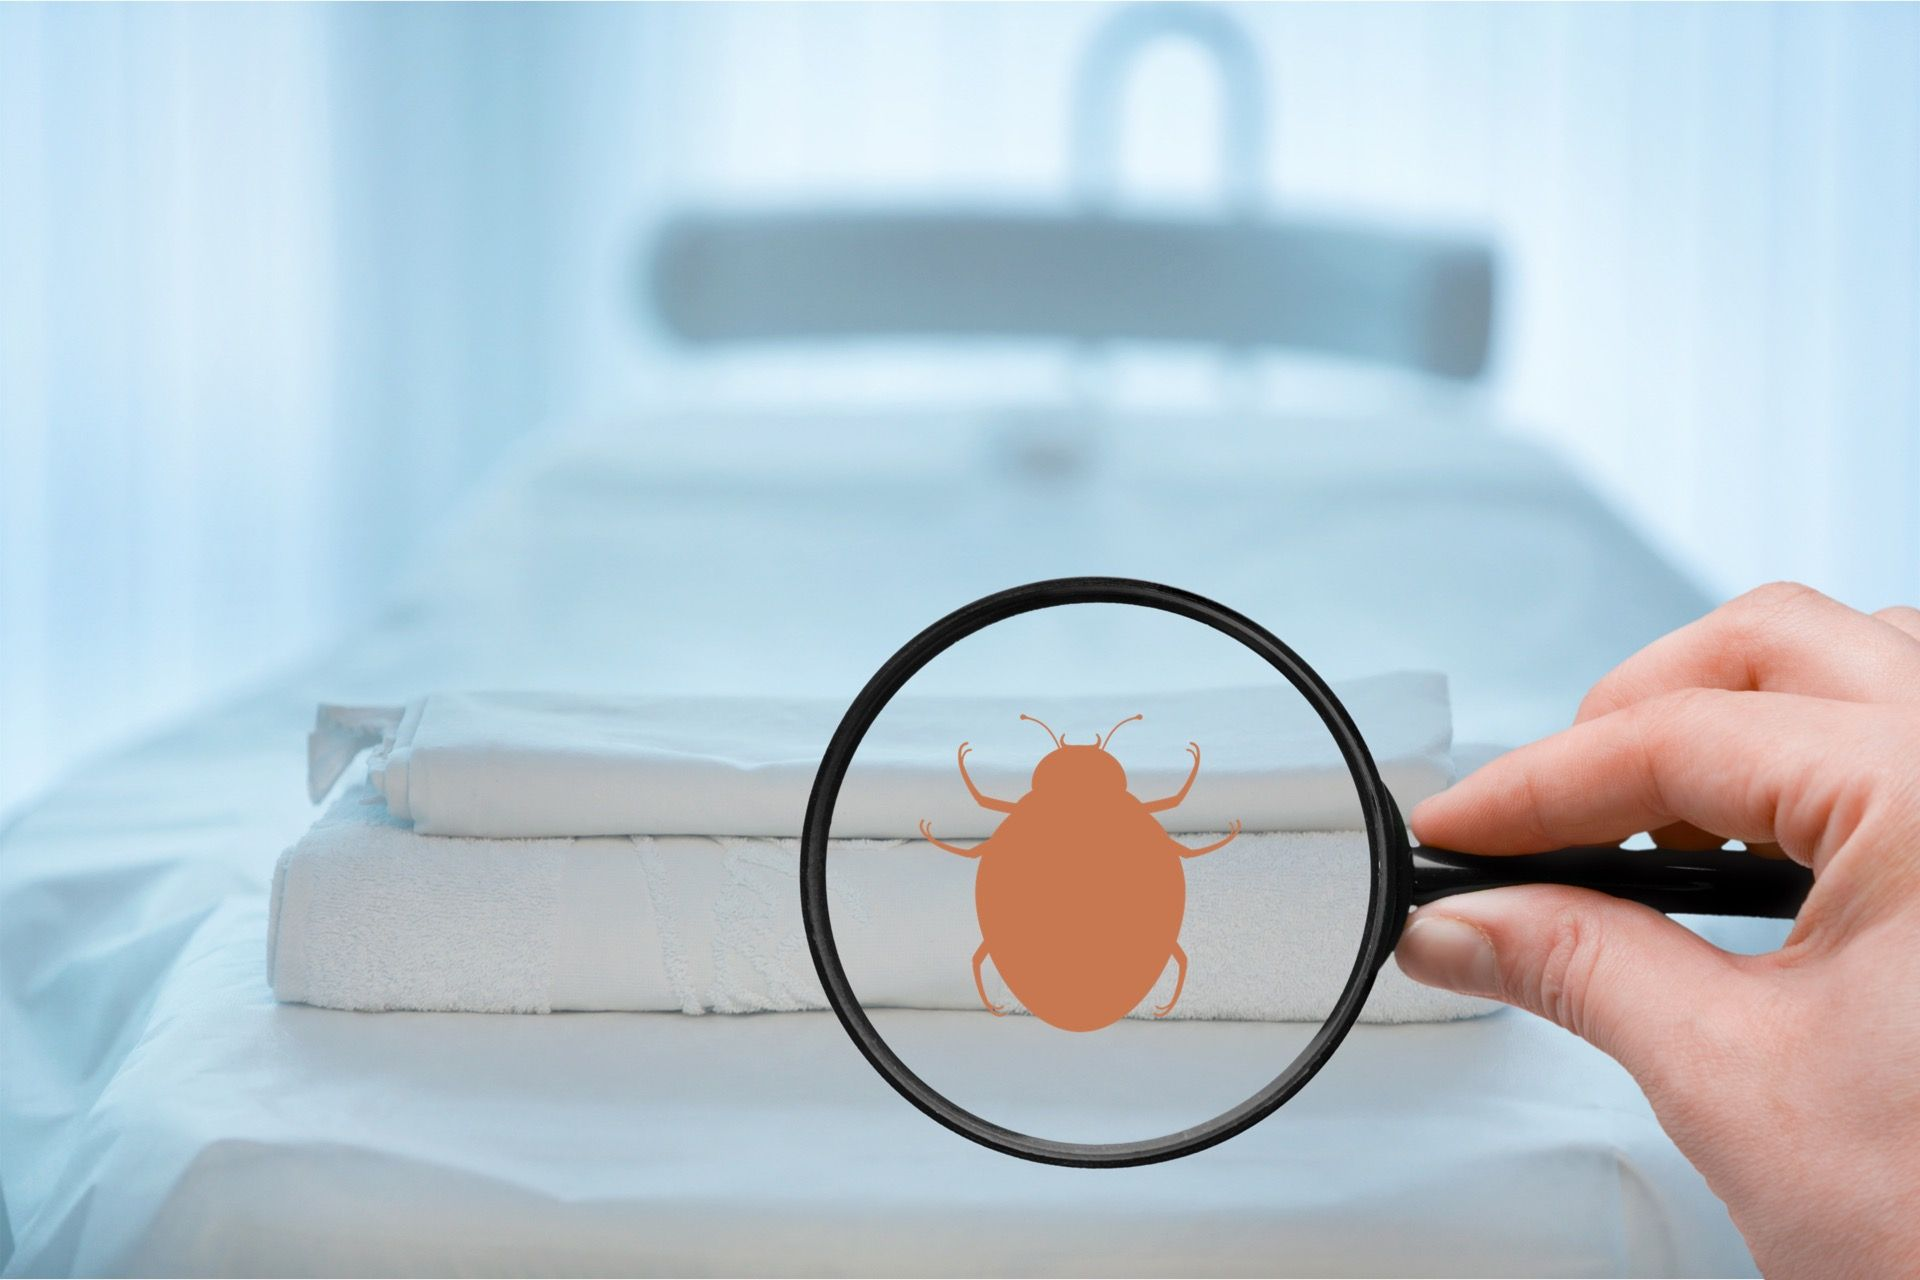 CT Pest Control: Identify & prevent Common Pests in your home, kitchen, office, or warehouse with Effective Pest Management